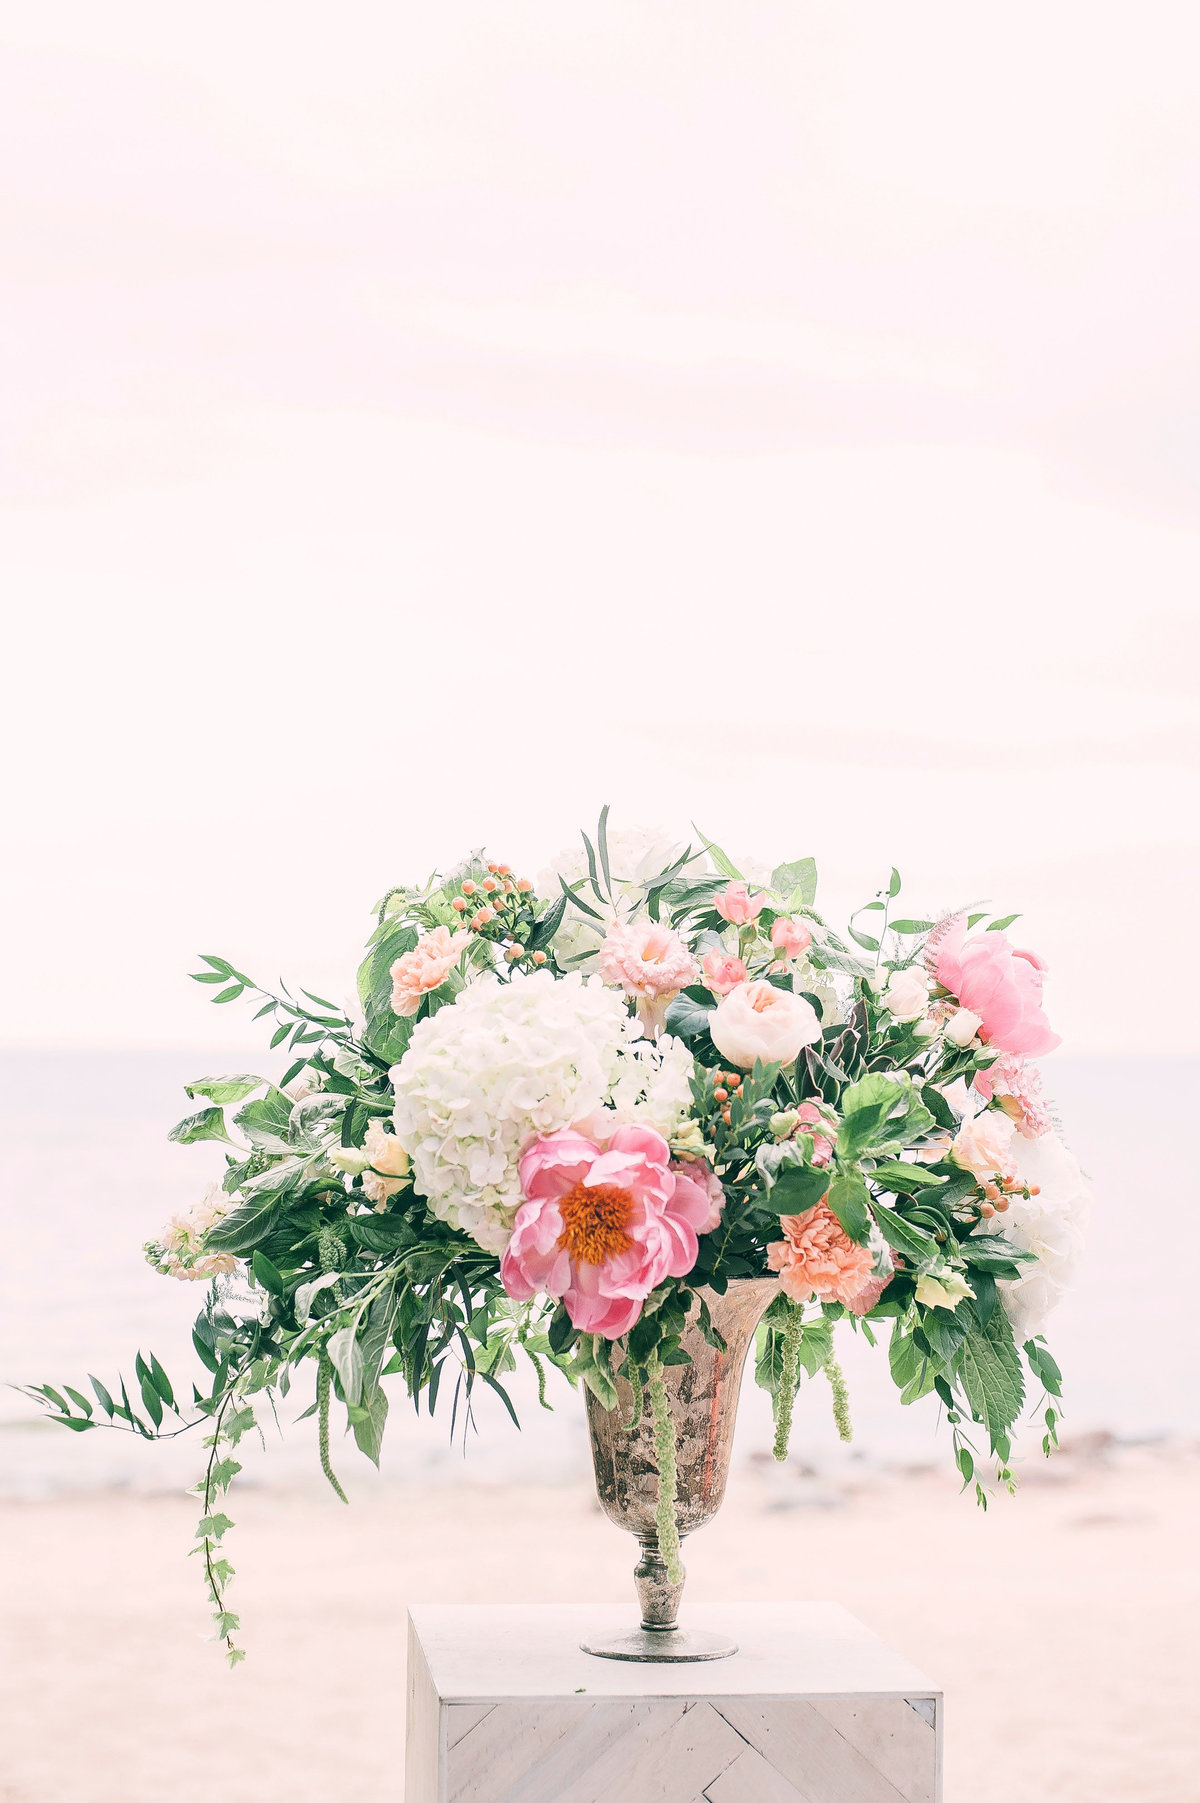 beautiful-blooming-bouquet-1070860